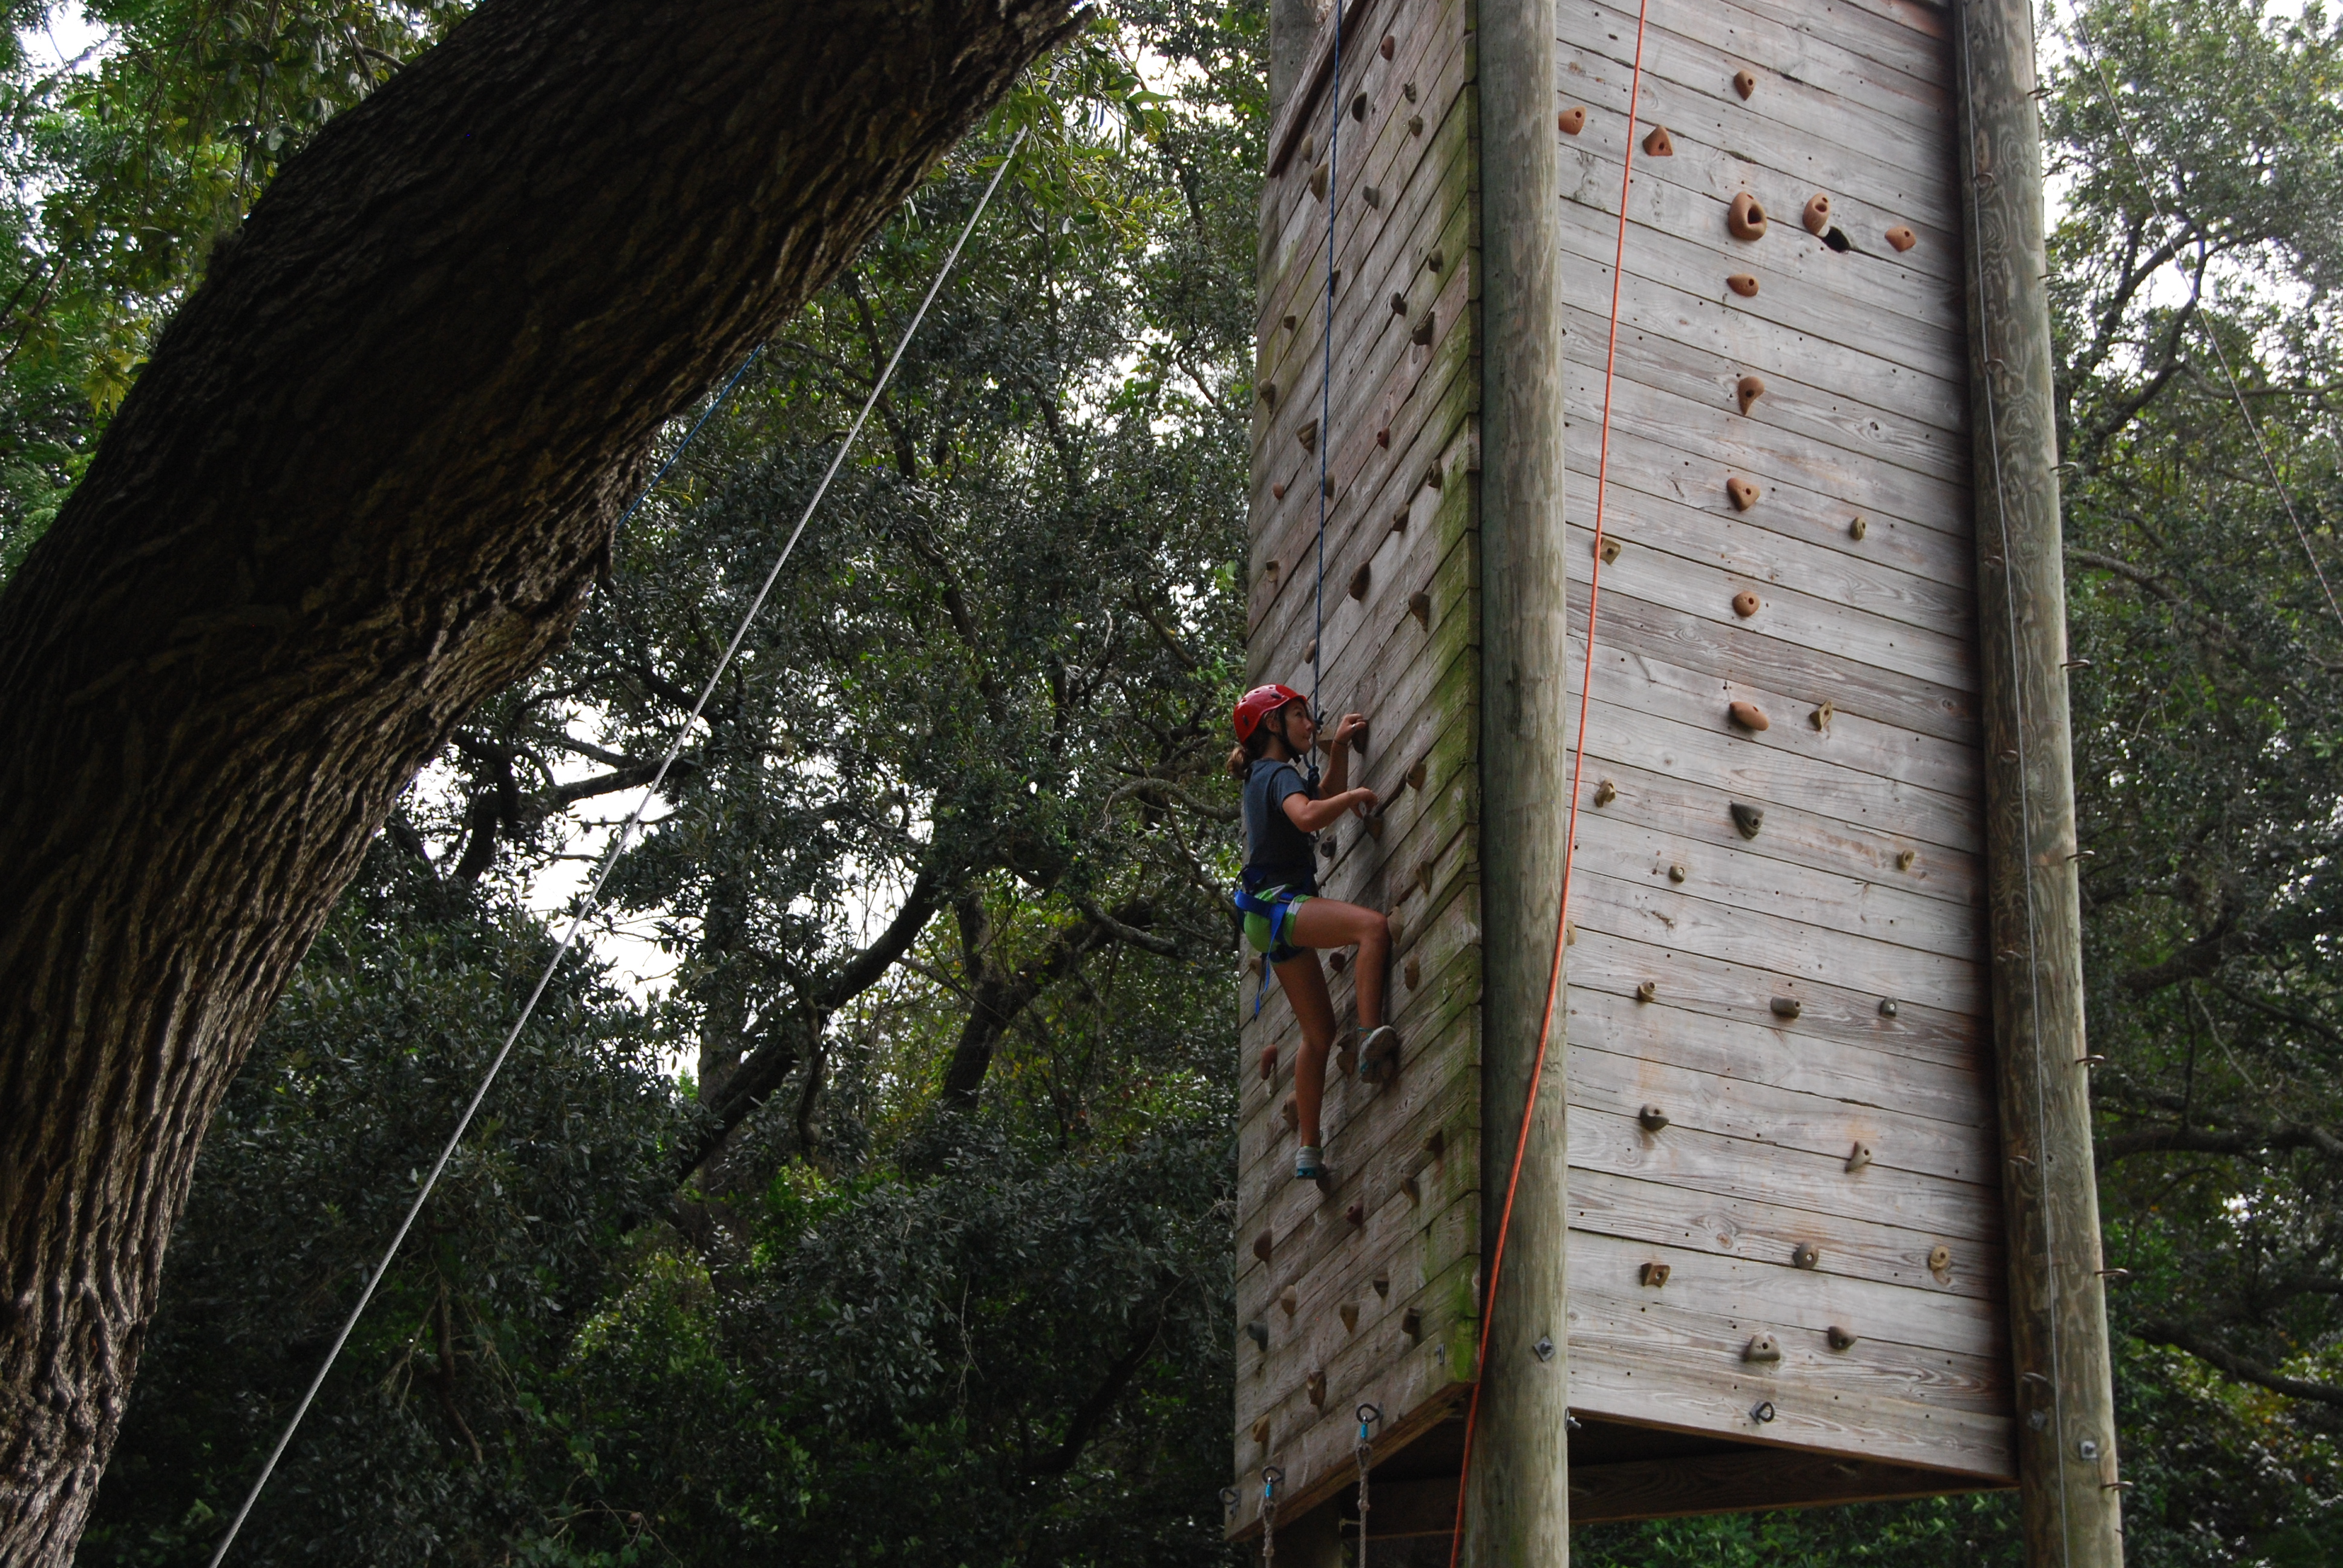 Camper climbs up climbing tower